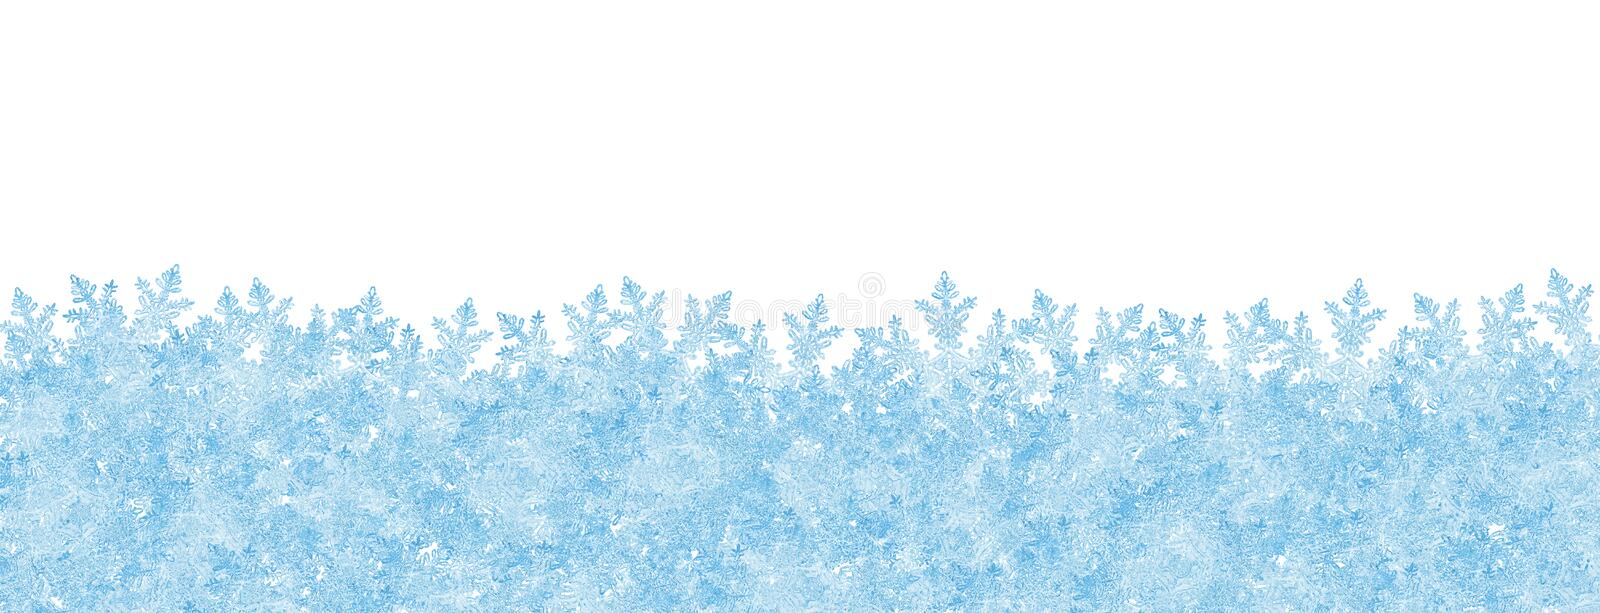 Abstract Winter Panorama Backdrop with White Background and Froz royalty free illustration